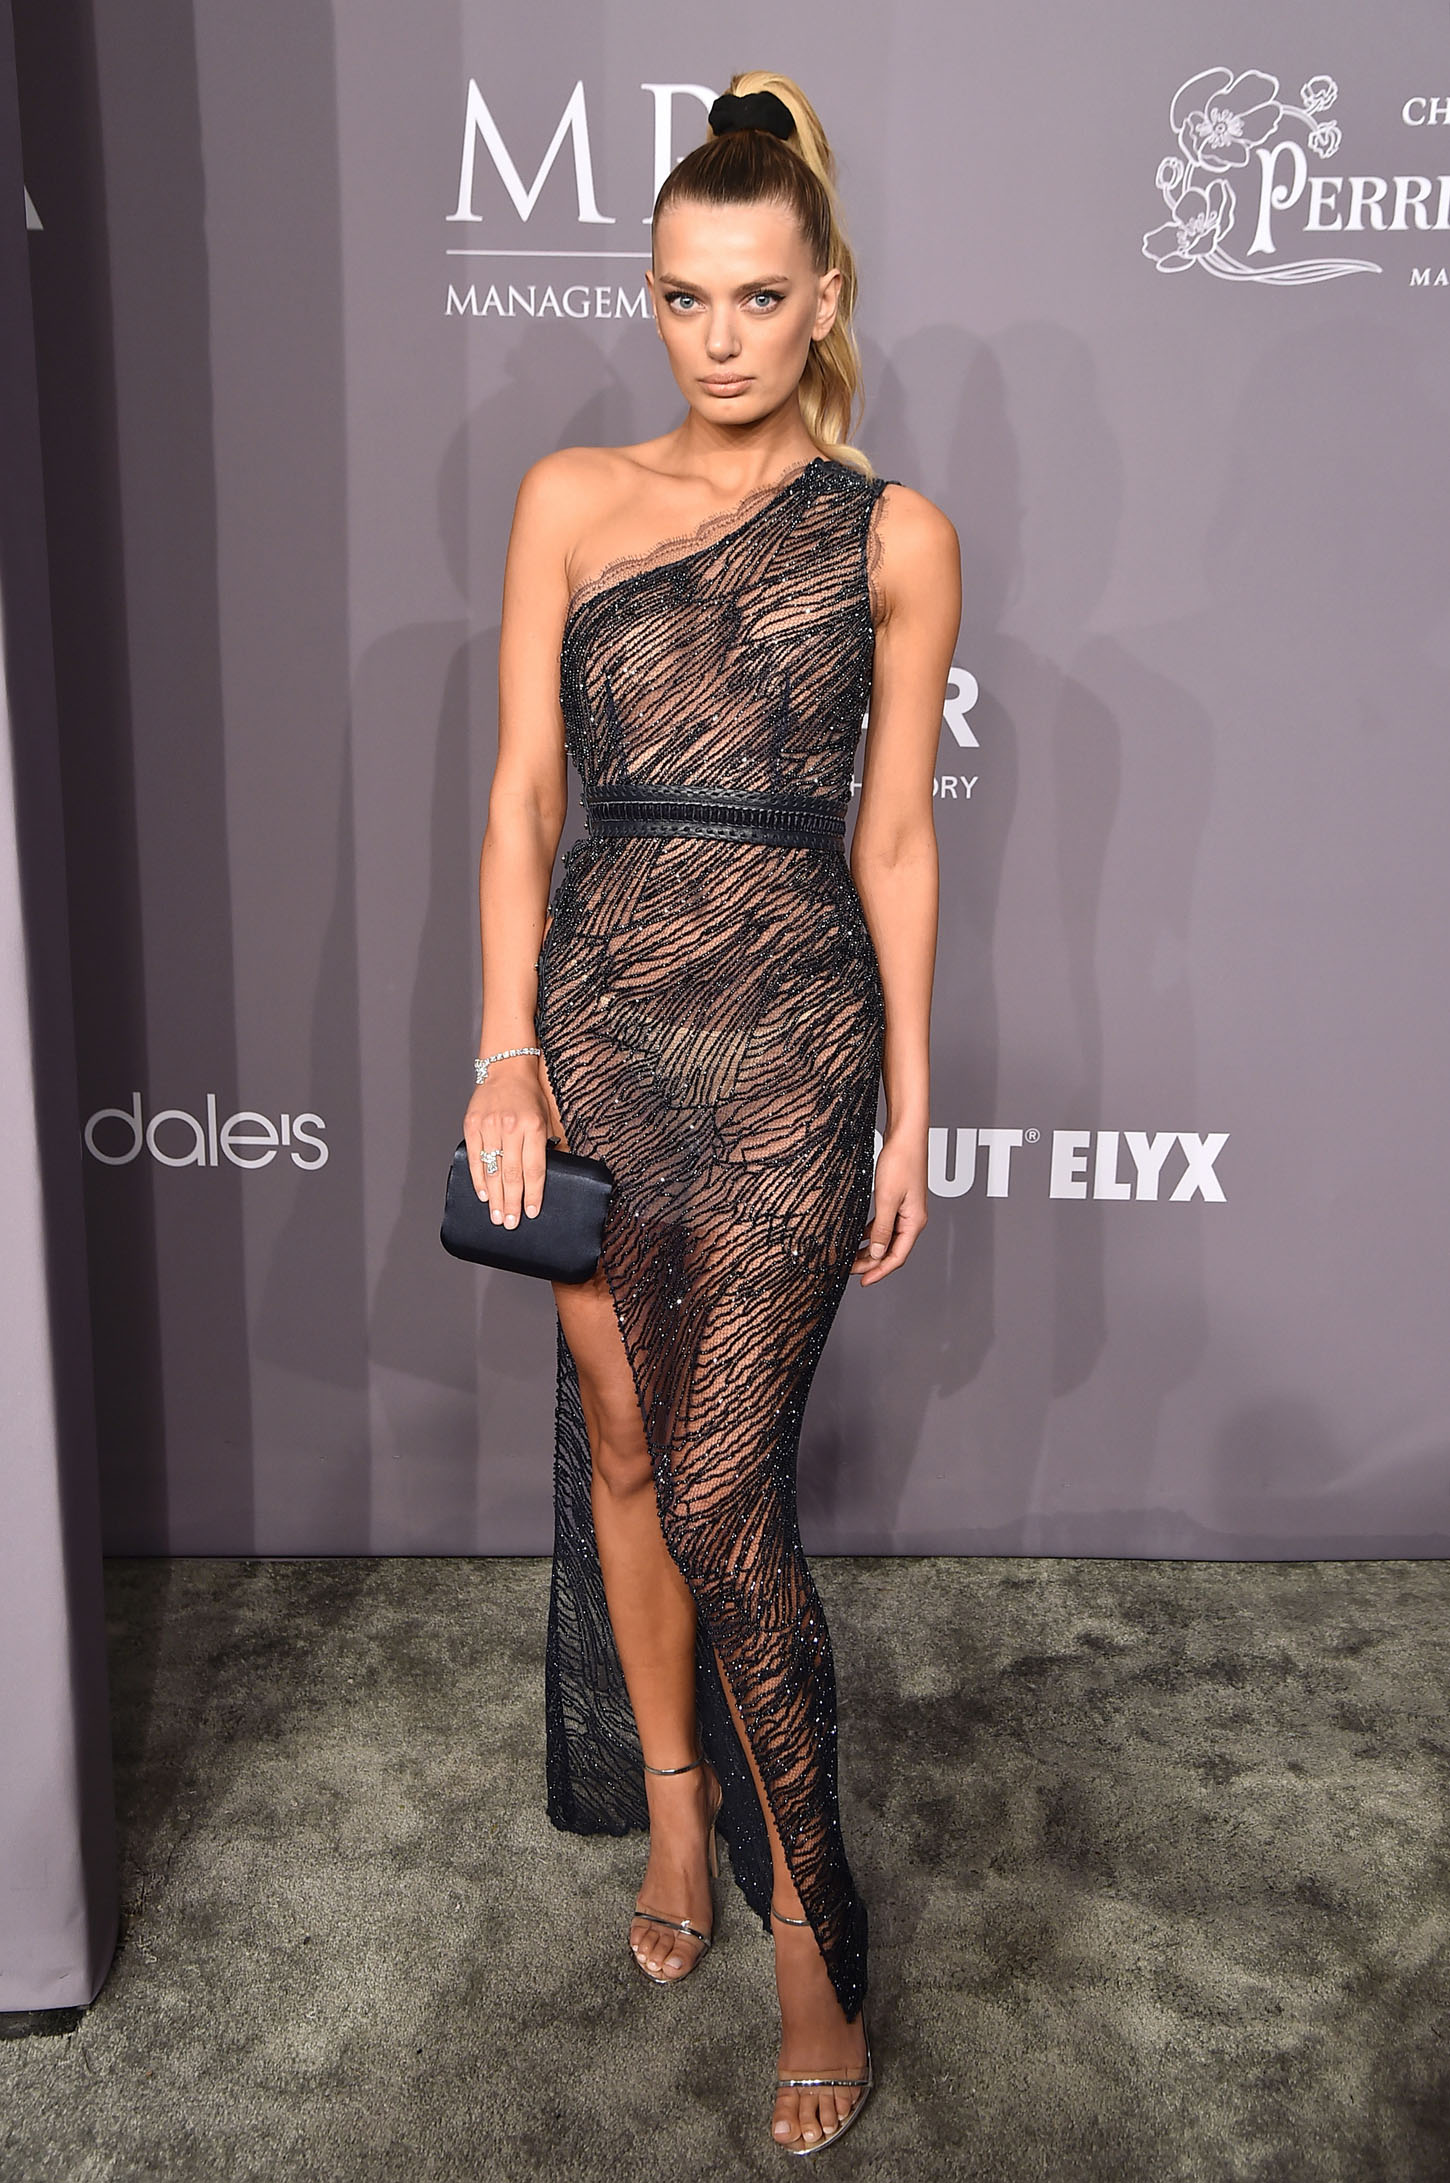 NEW YORK, NY - FEBRUARY 07:  Model Bregje Heinen attends the 2018 amfAR Gala New York at Cipriani Wall Street on February 7, 2018 in New York City.  (Photo by Theo Wargo/Getty Images)